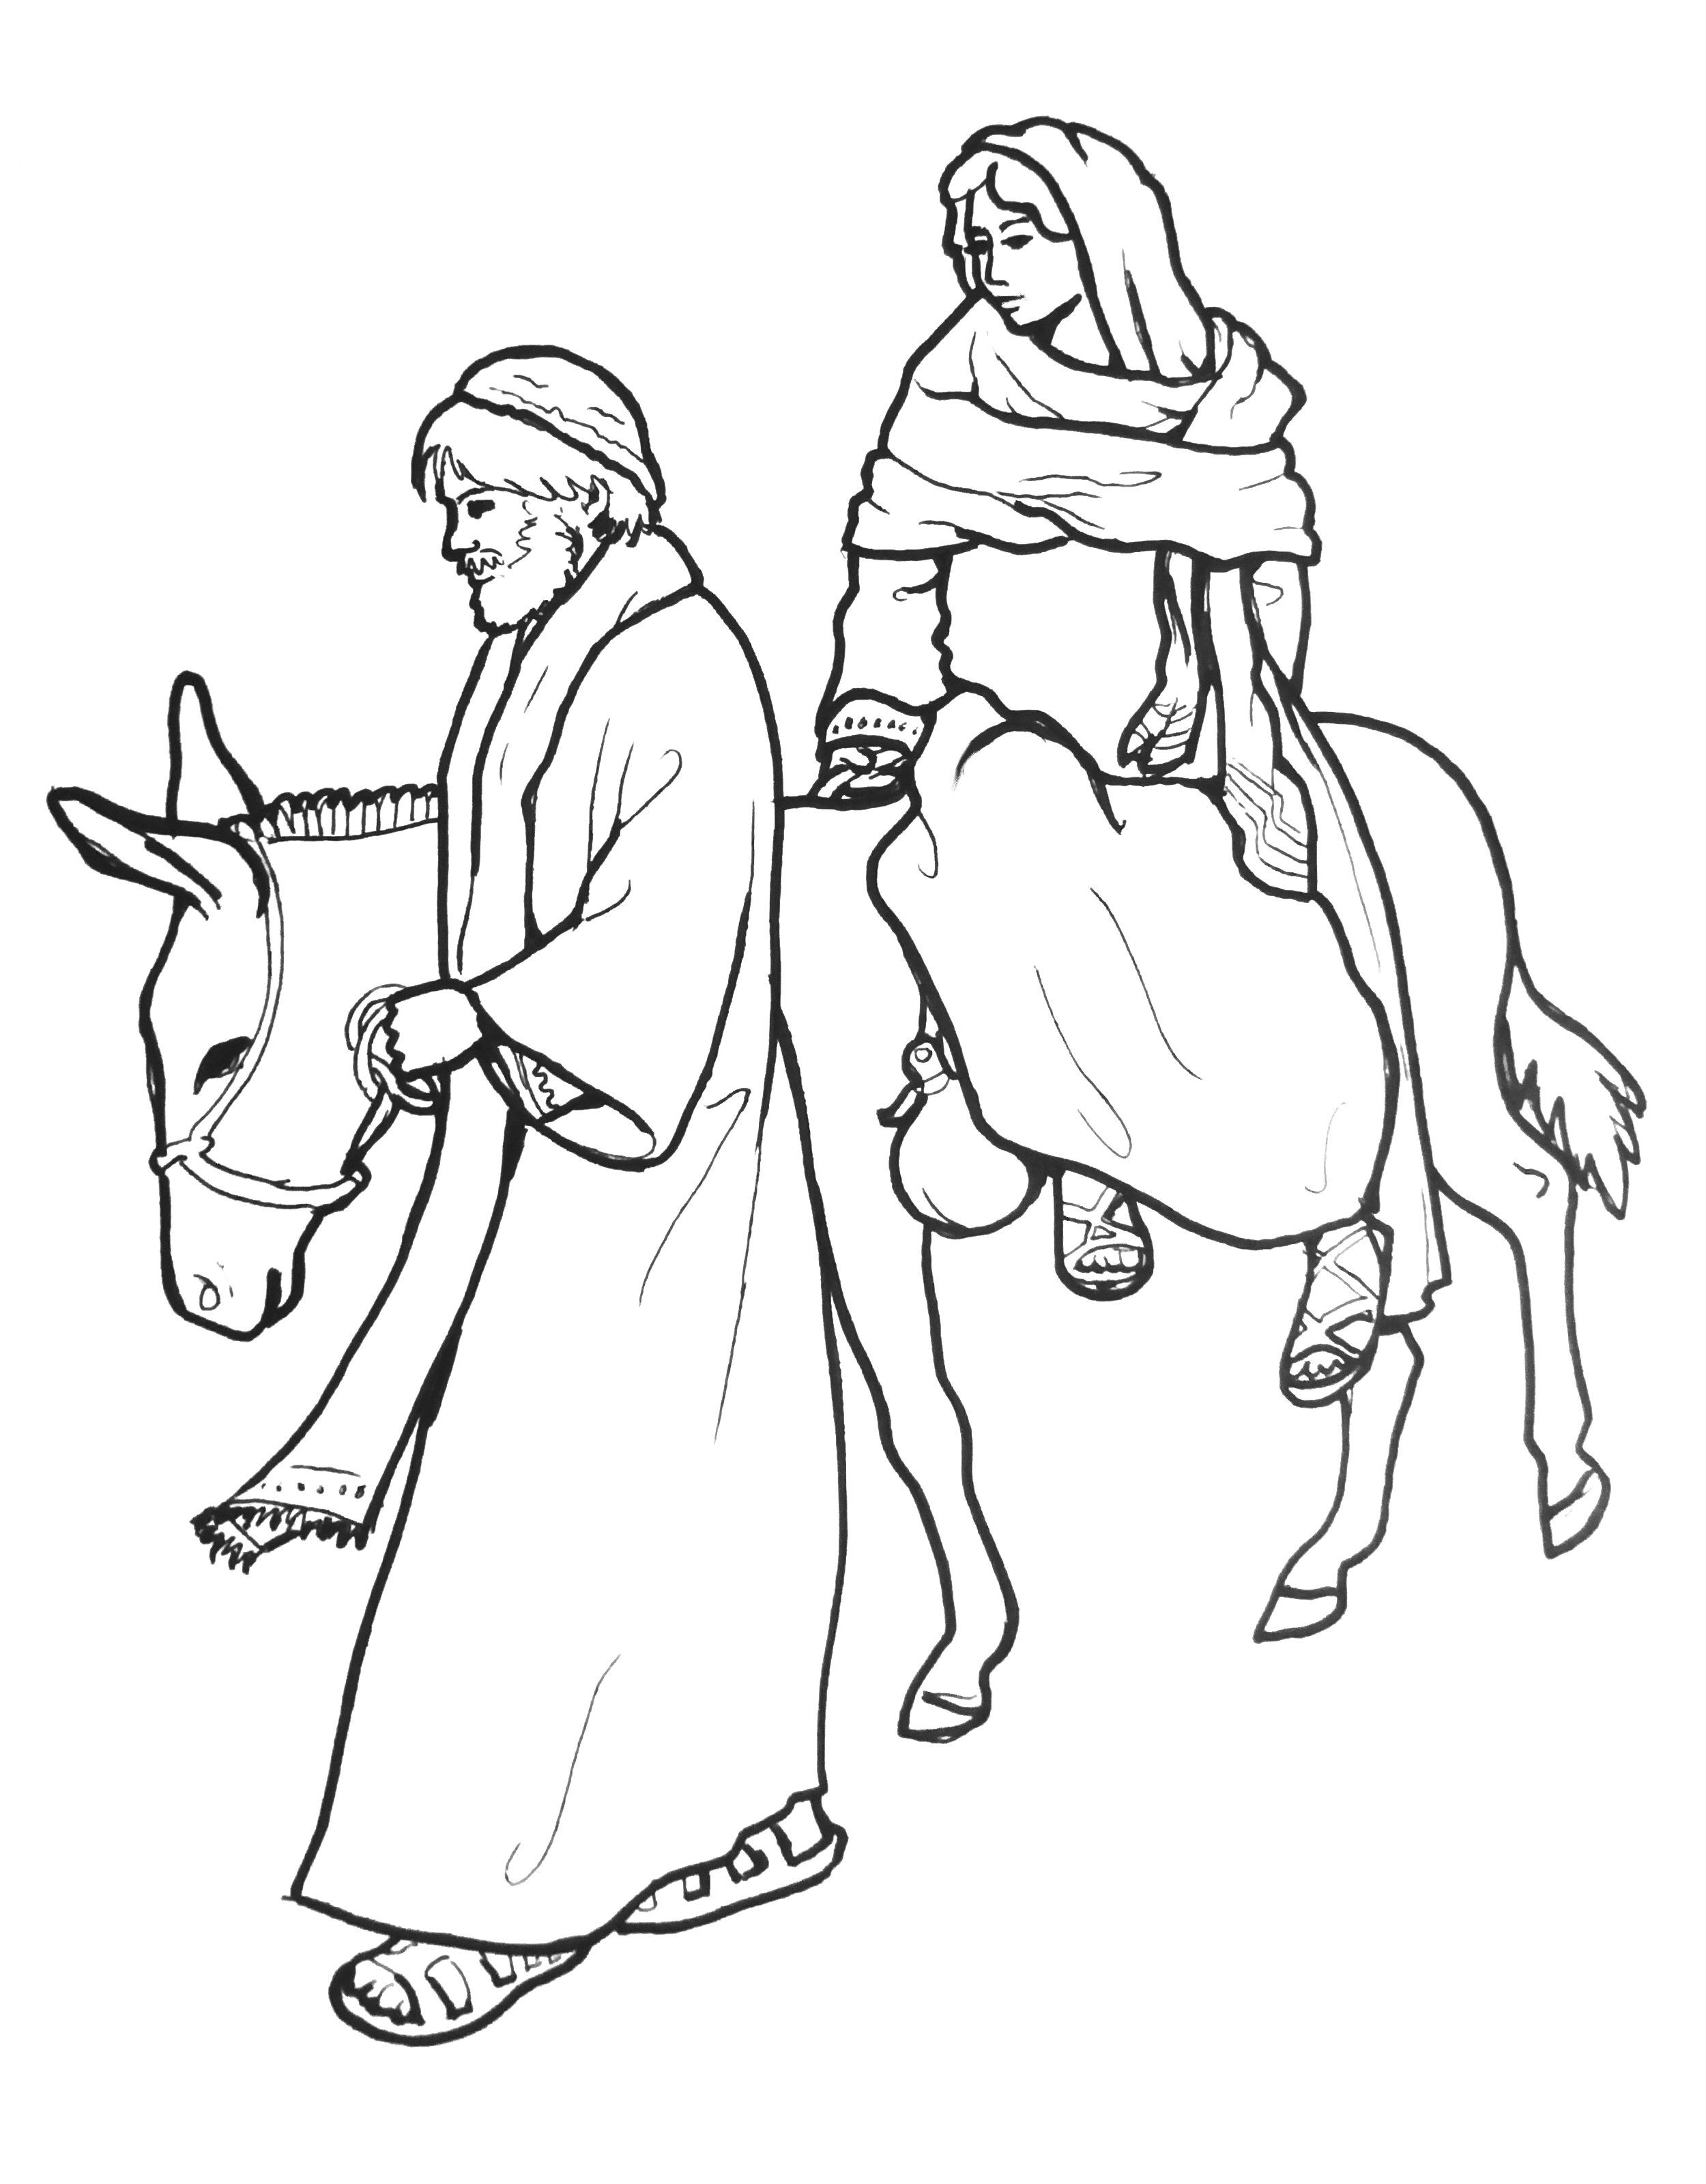 Joseph And Mary On Donkey On Their Way To Bethlehem My Own Line